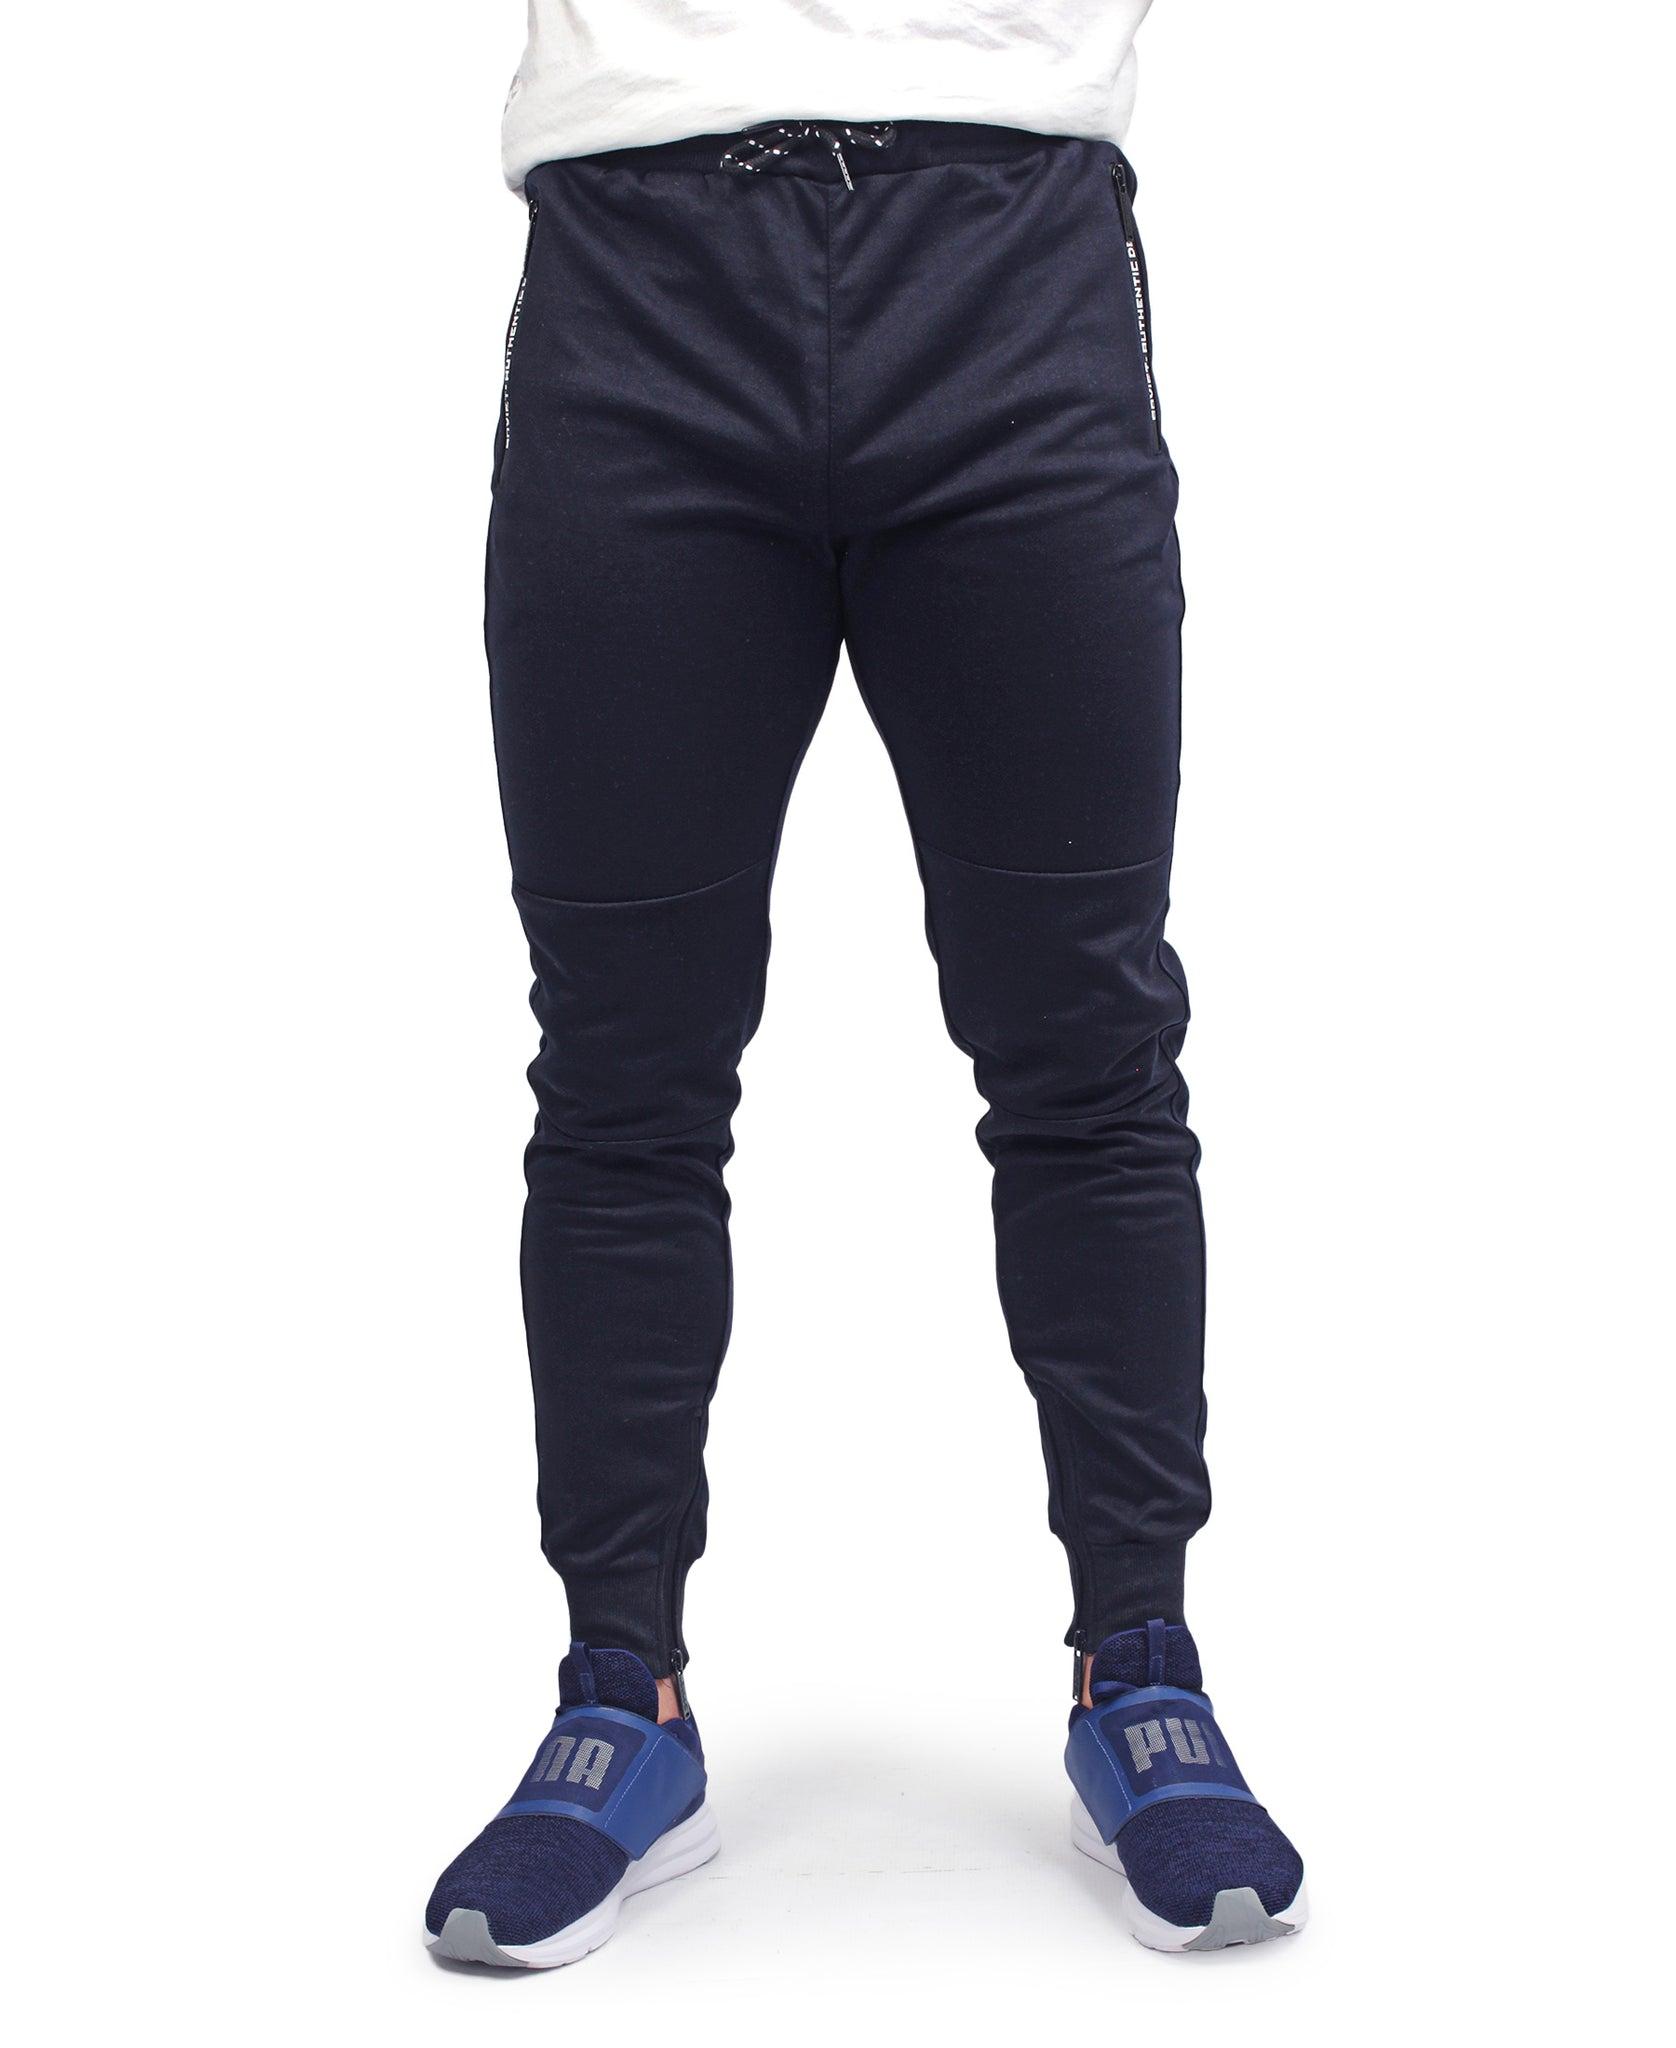 Compton Trackpants - Navy